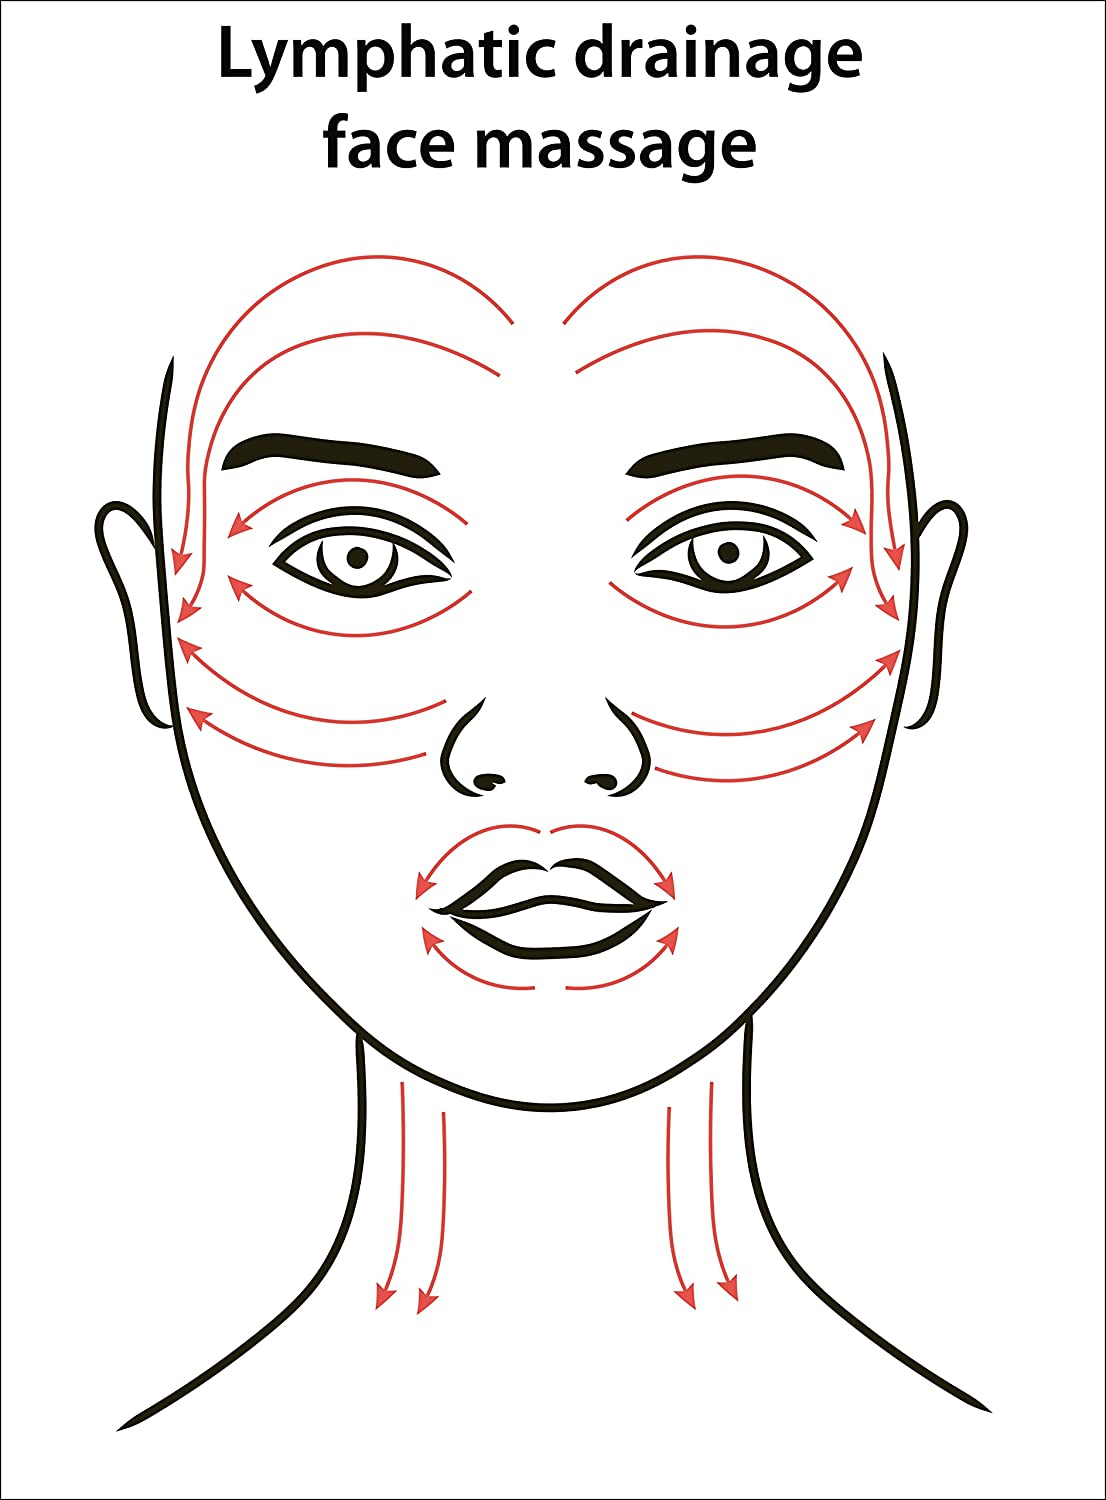 lymphatic drainage face